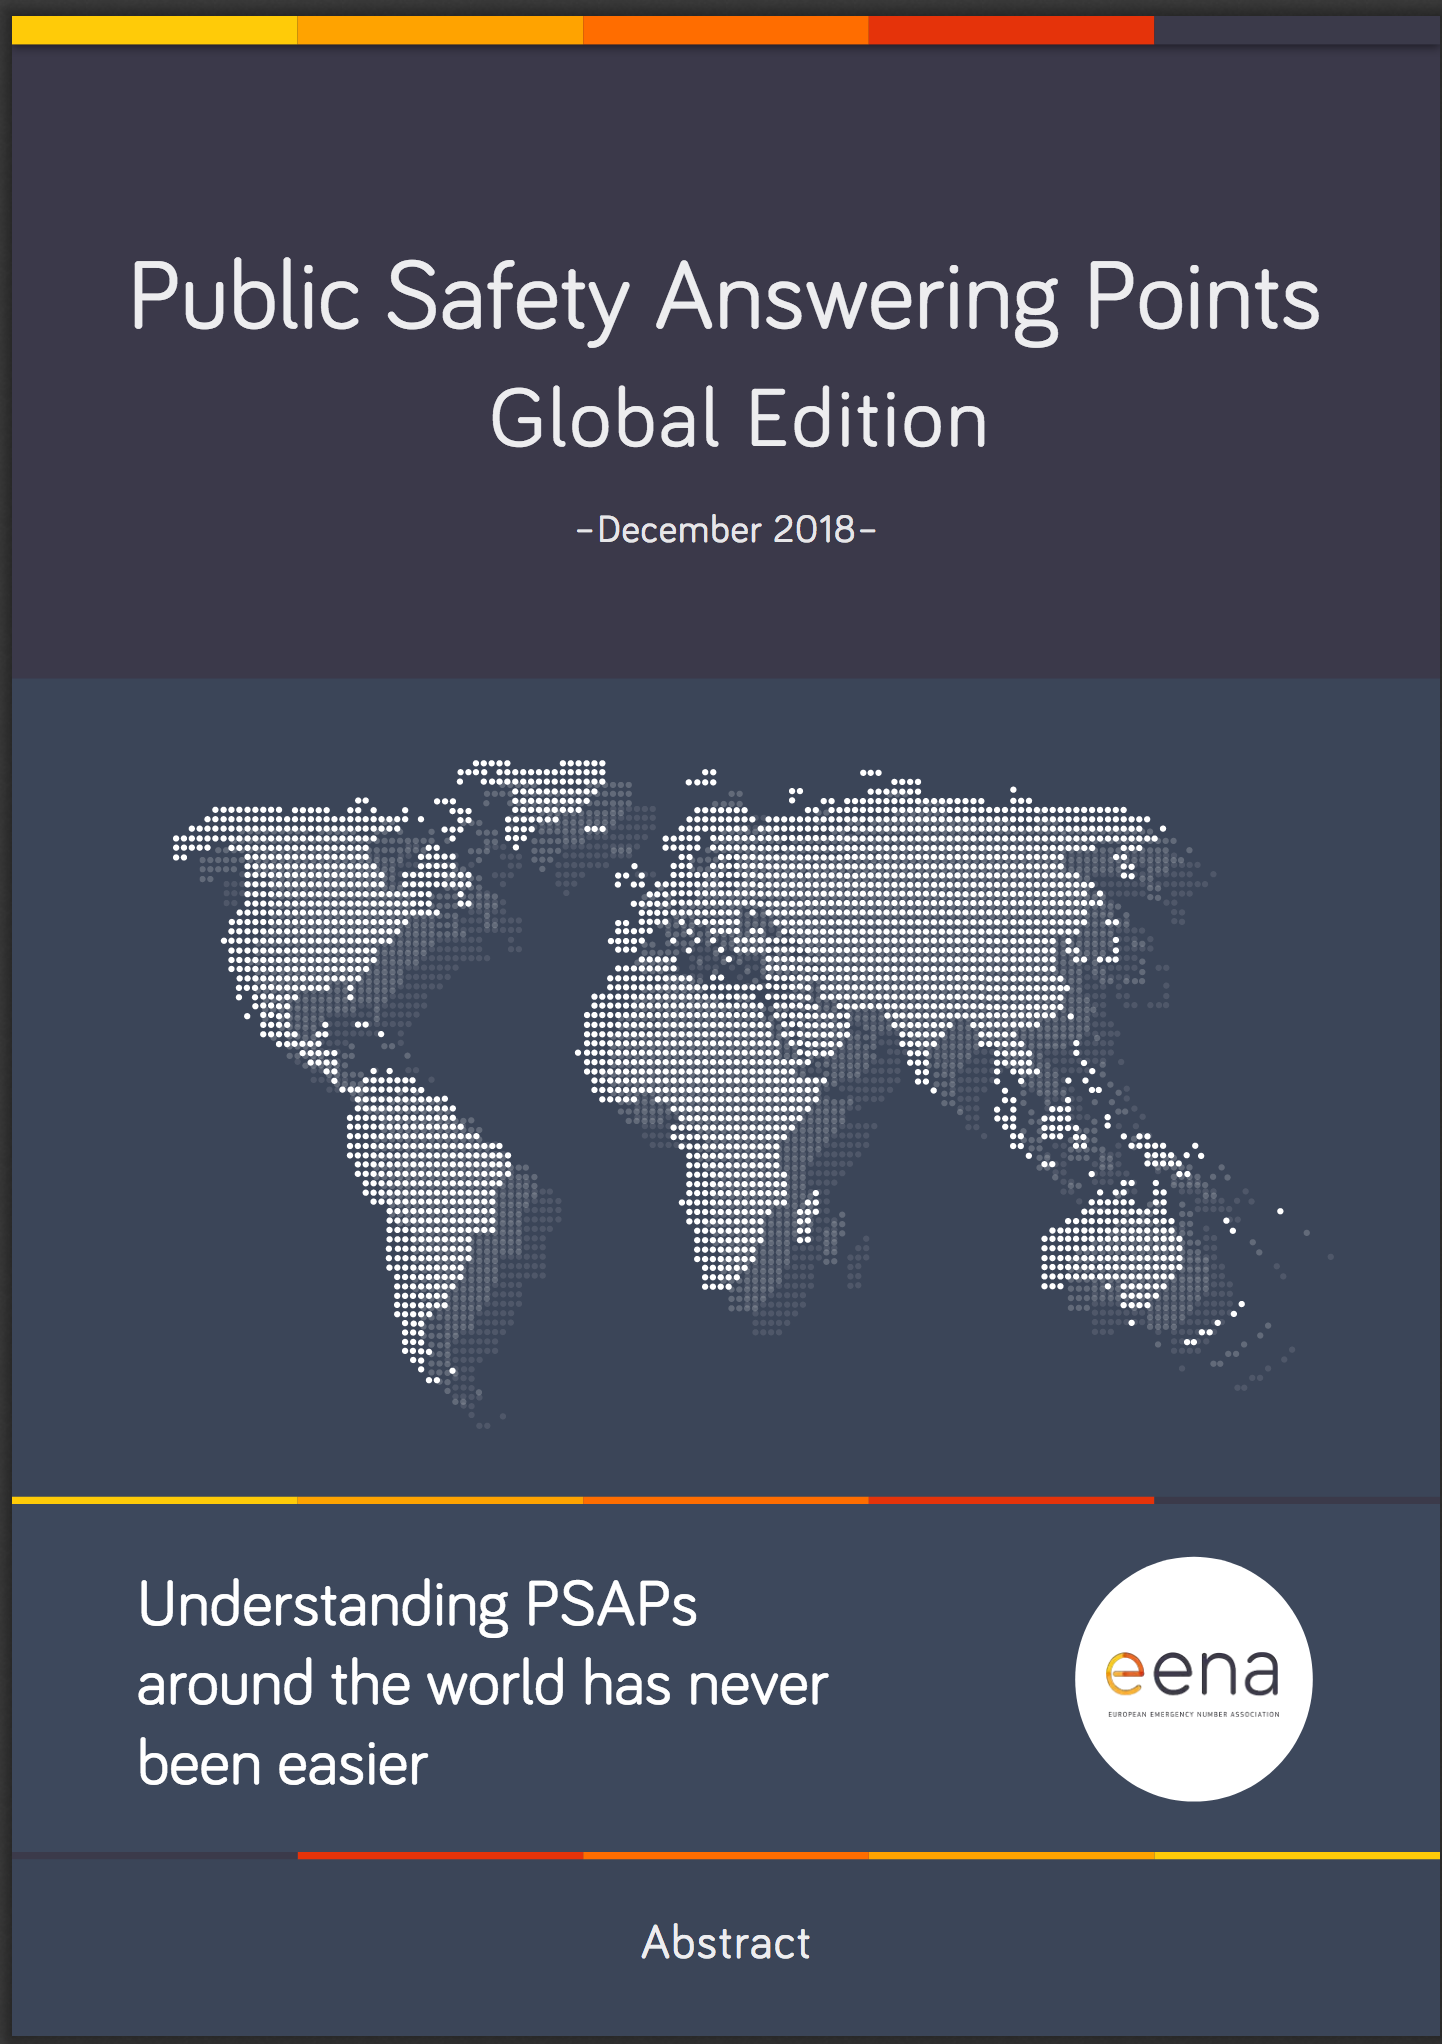 Public Safety Answering Points Global Edition 2018